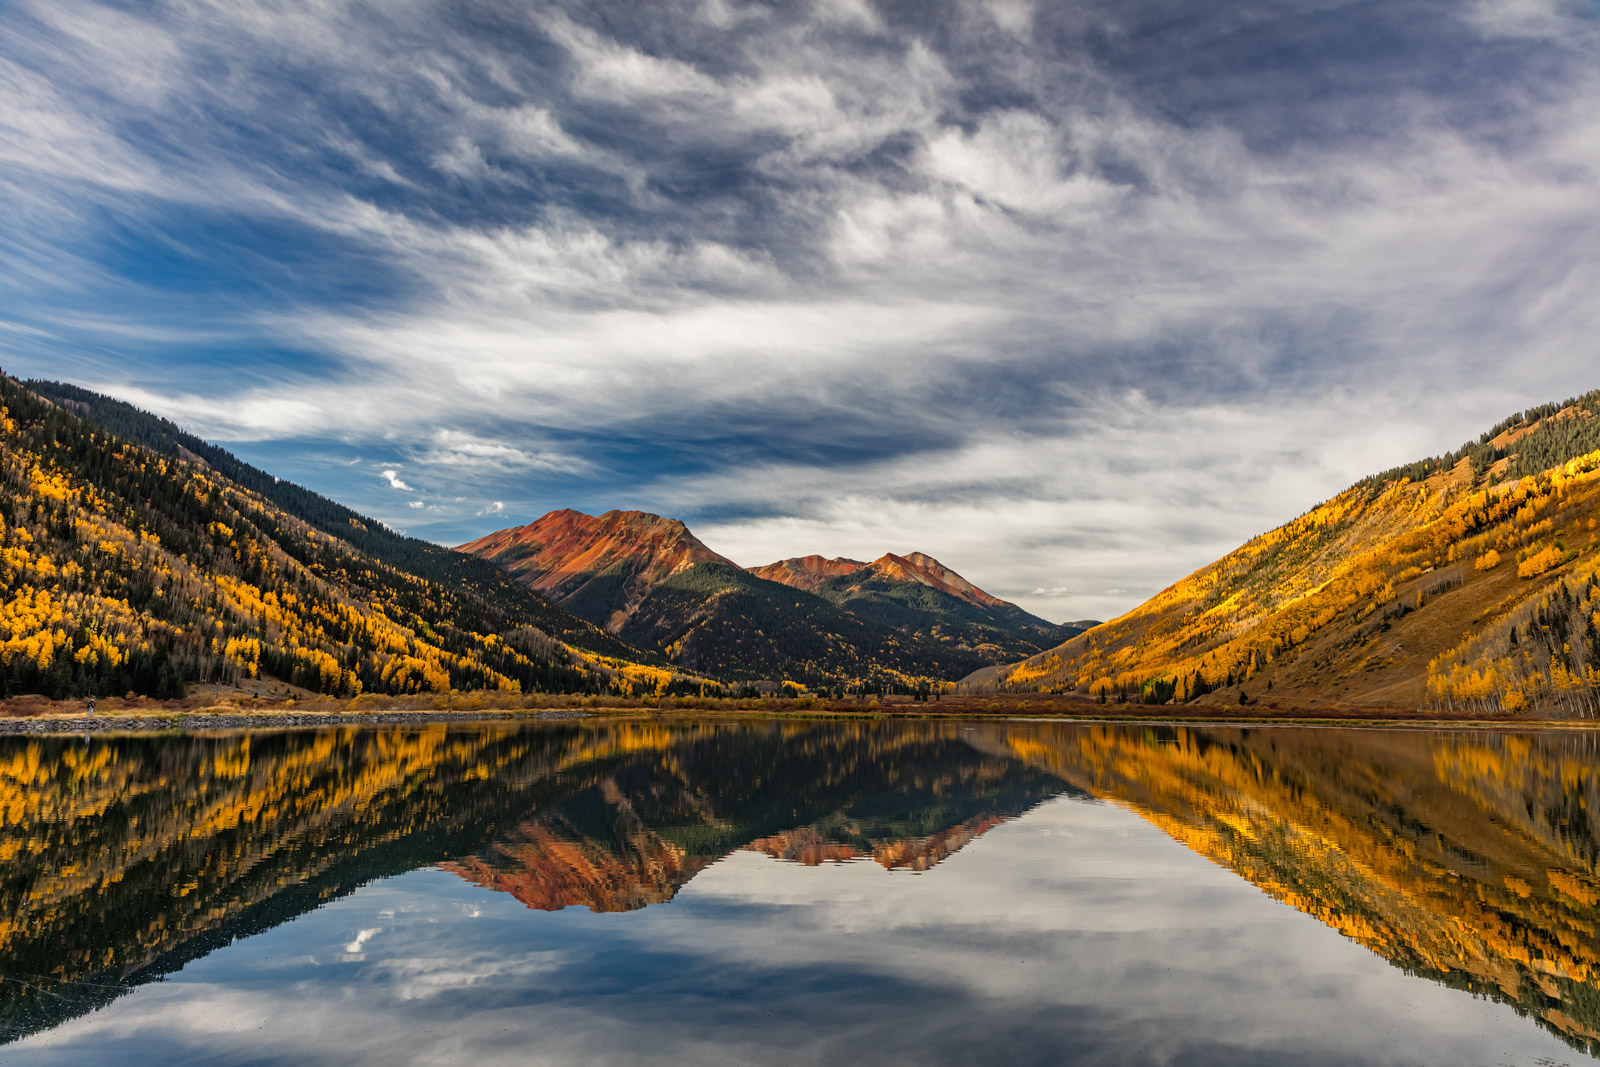 Colorado, Red Mountain, Crystal Lake, Reflection, Fall, limited edition, photograph, fine art, landscape, fall color, photo